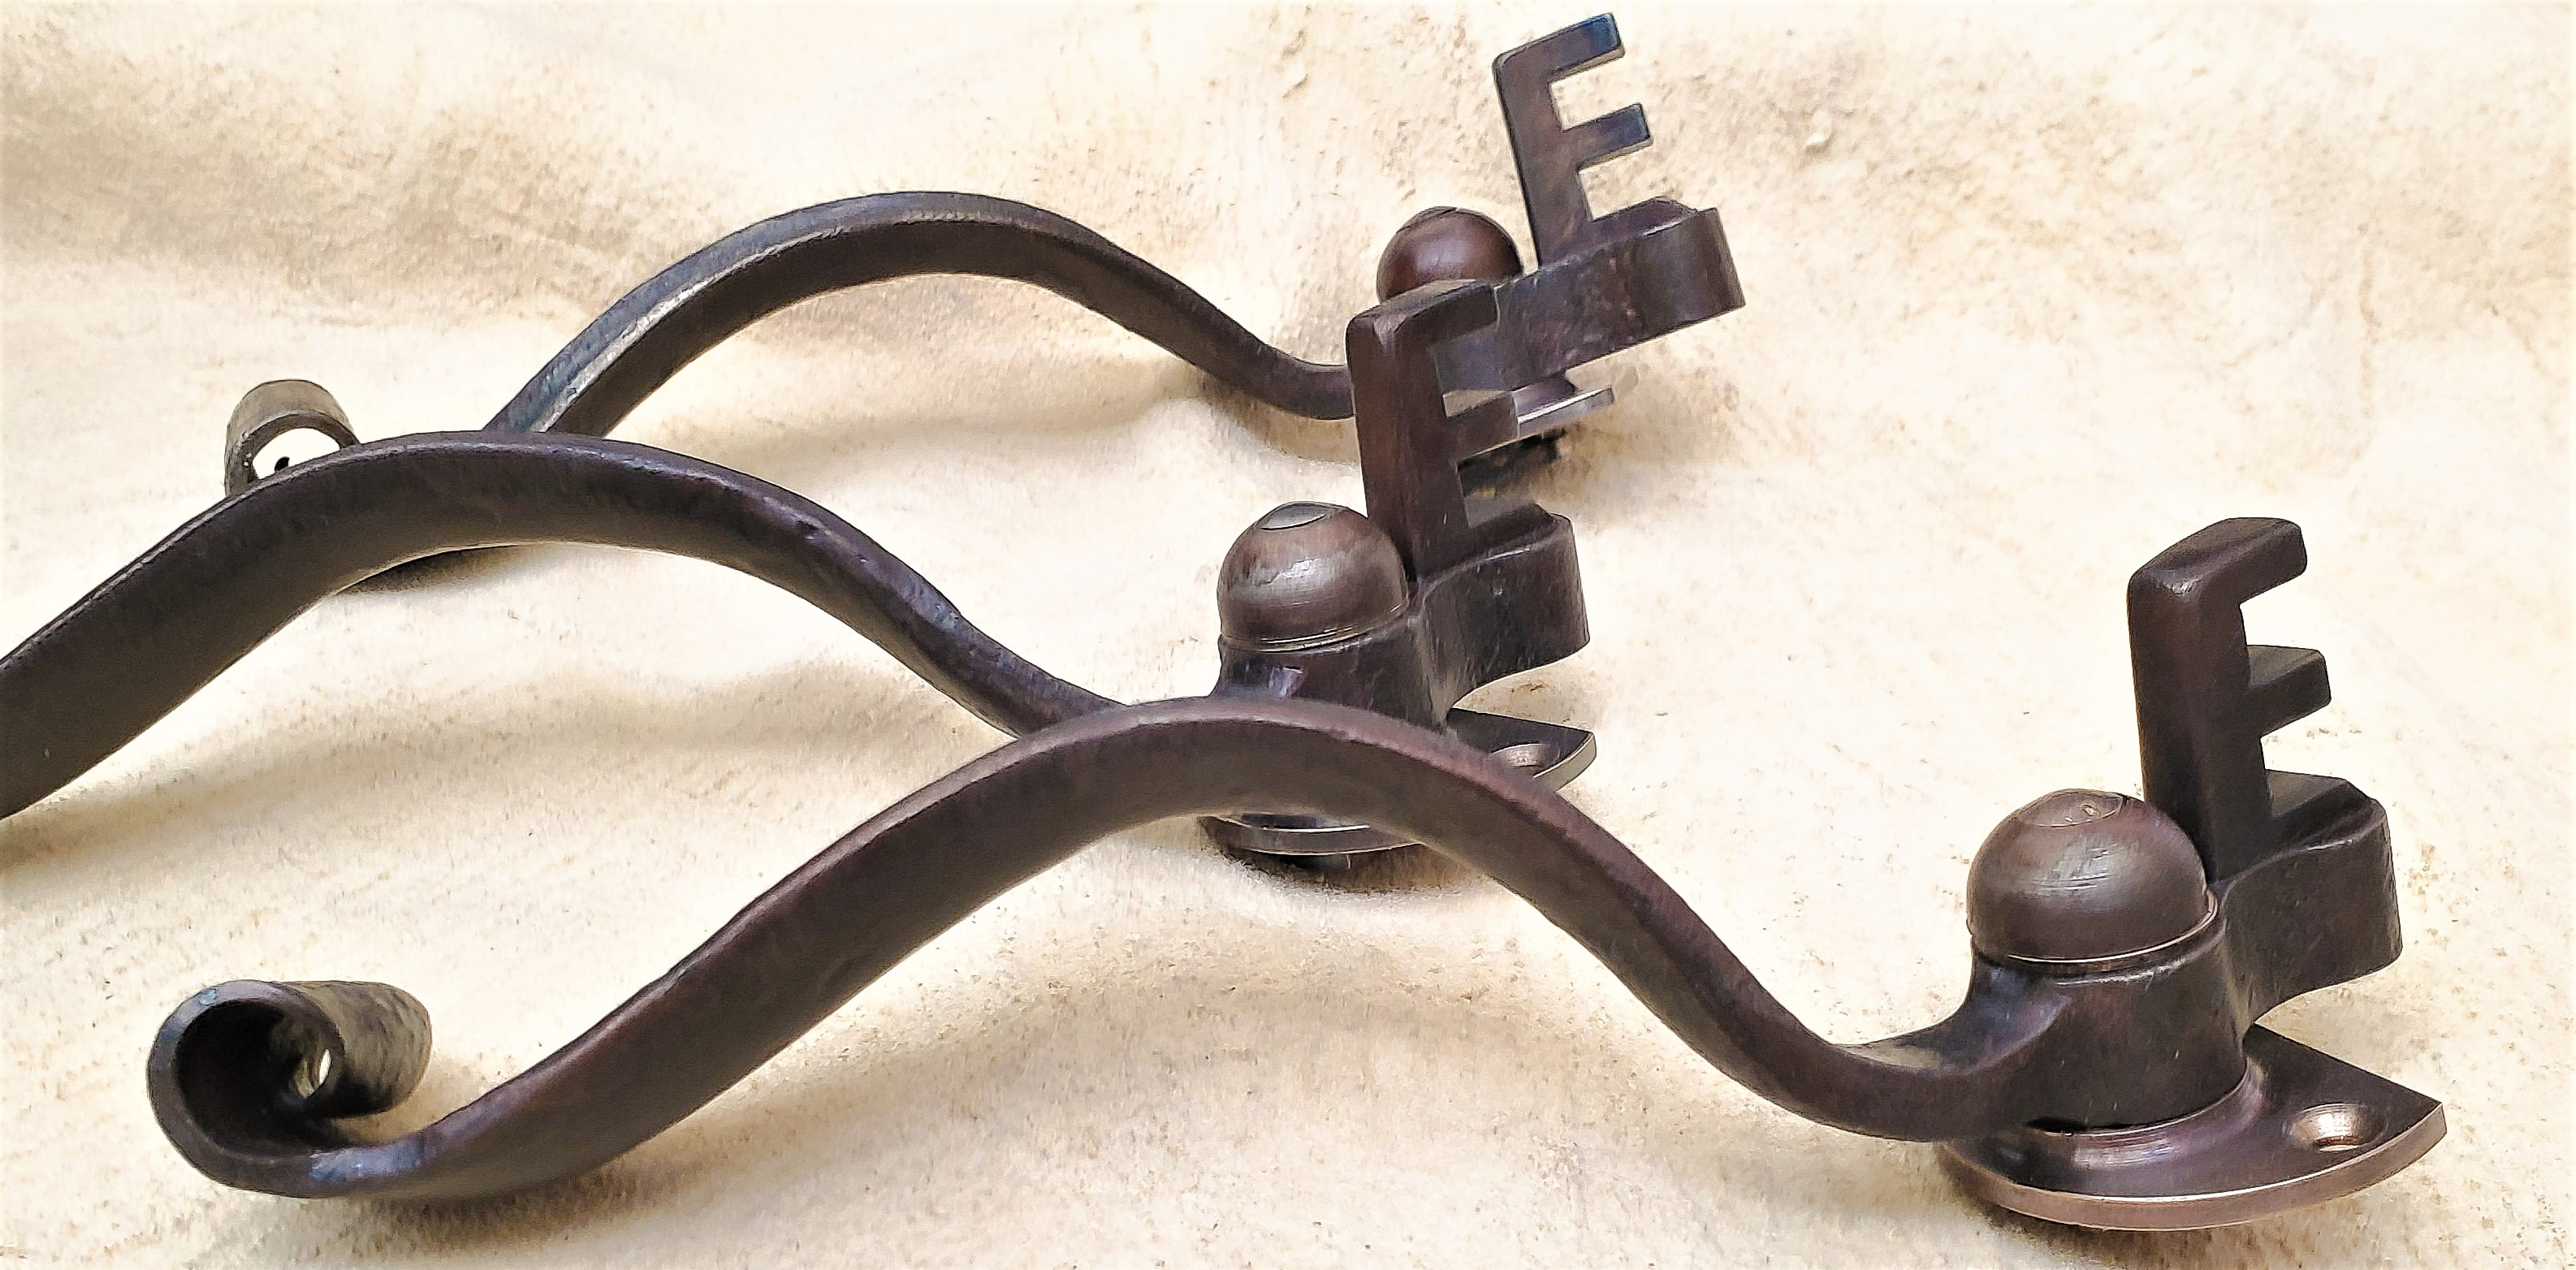 Replica of early 20th century Hope's window latch